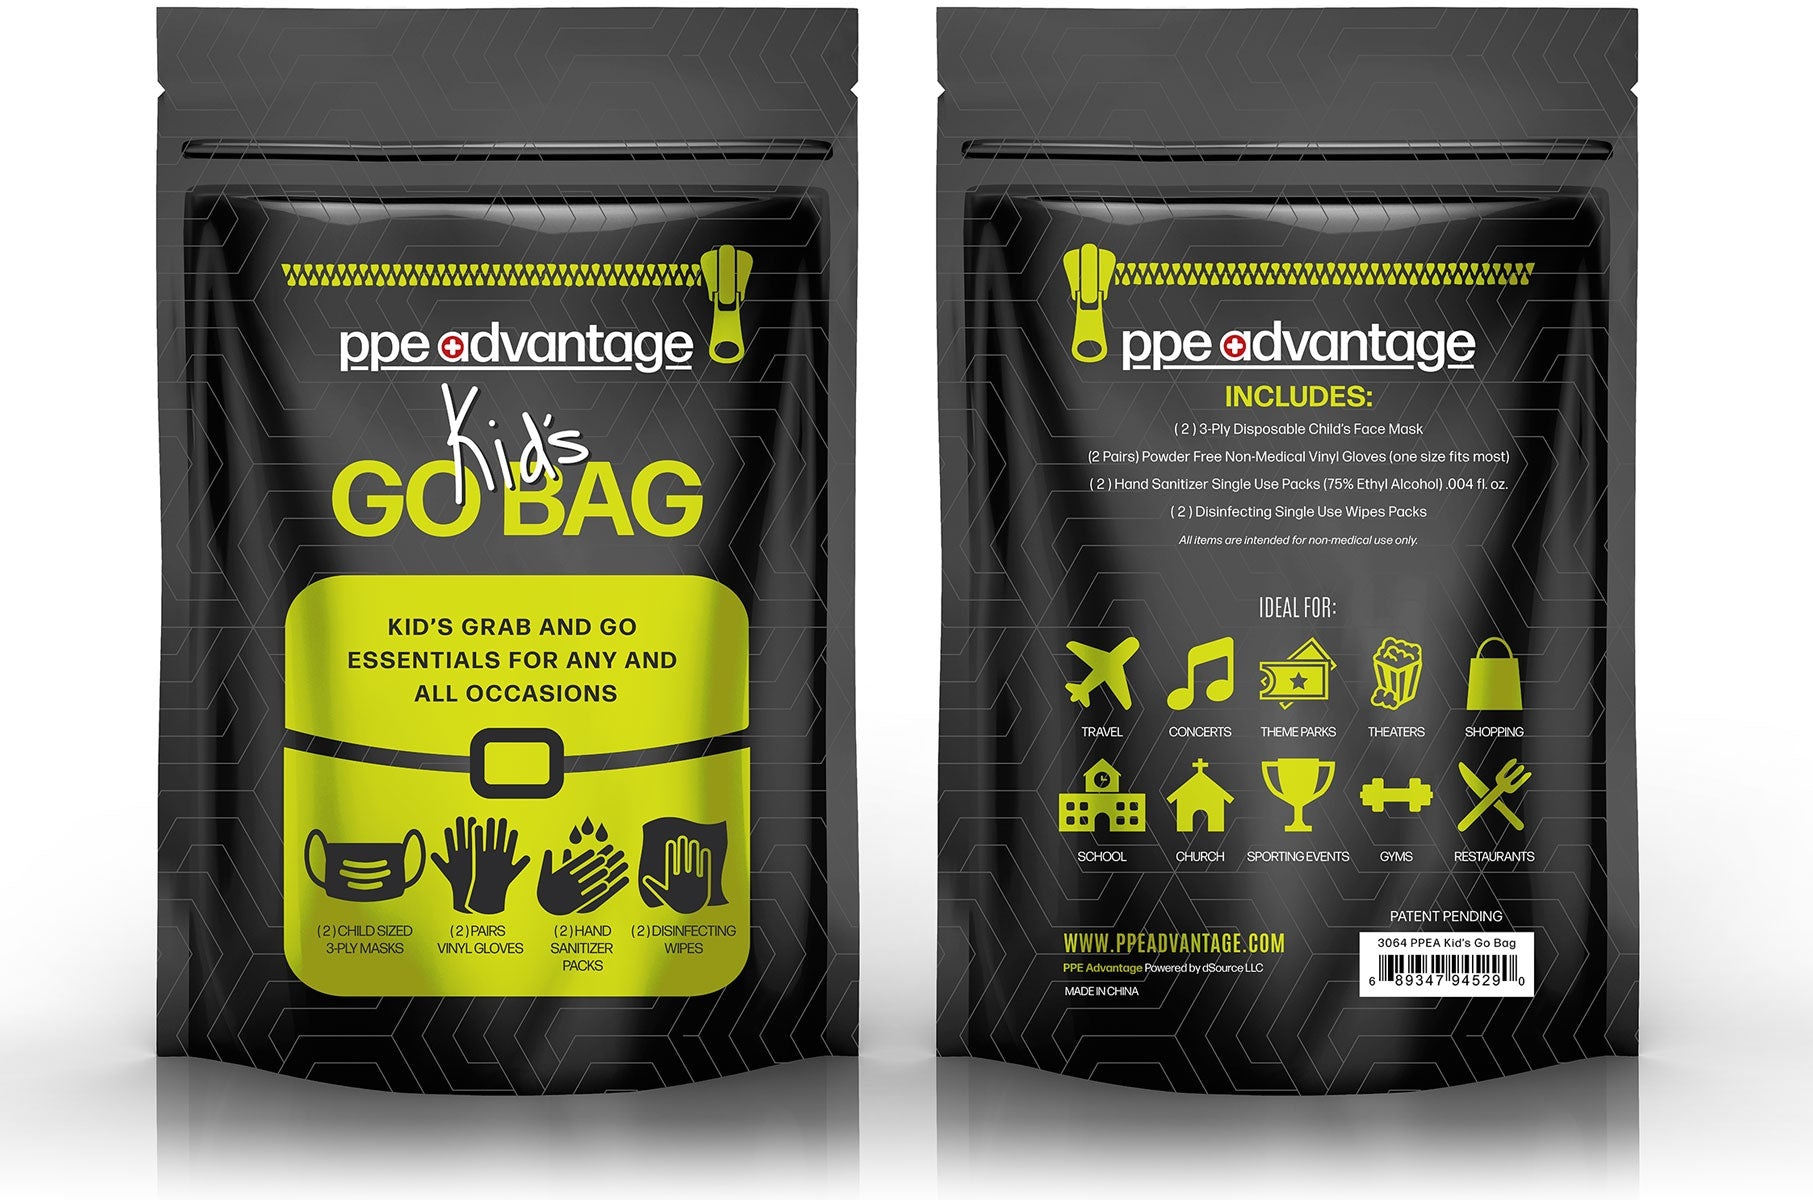 3064 GoBag for Kids -Grab and Go Essentials | PPE Advantate powered by dS Product Hunters